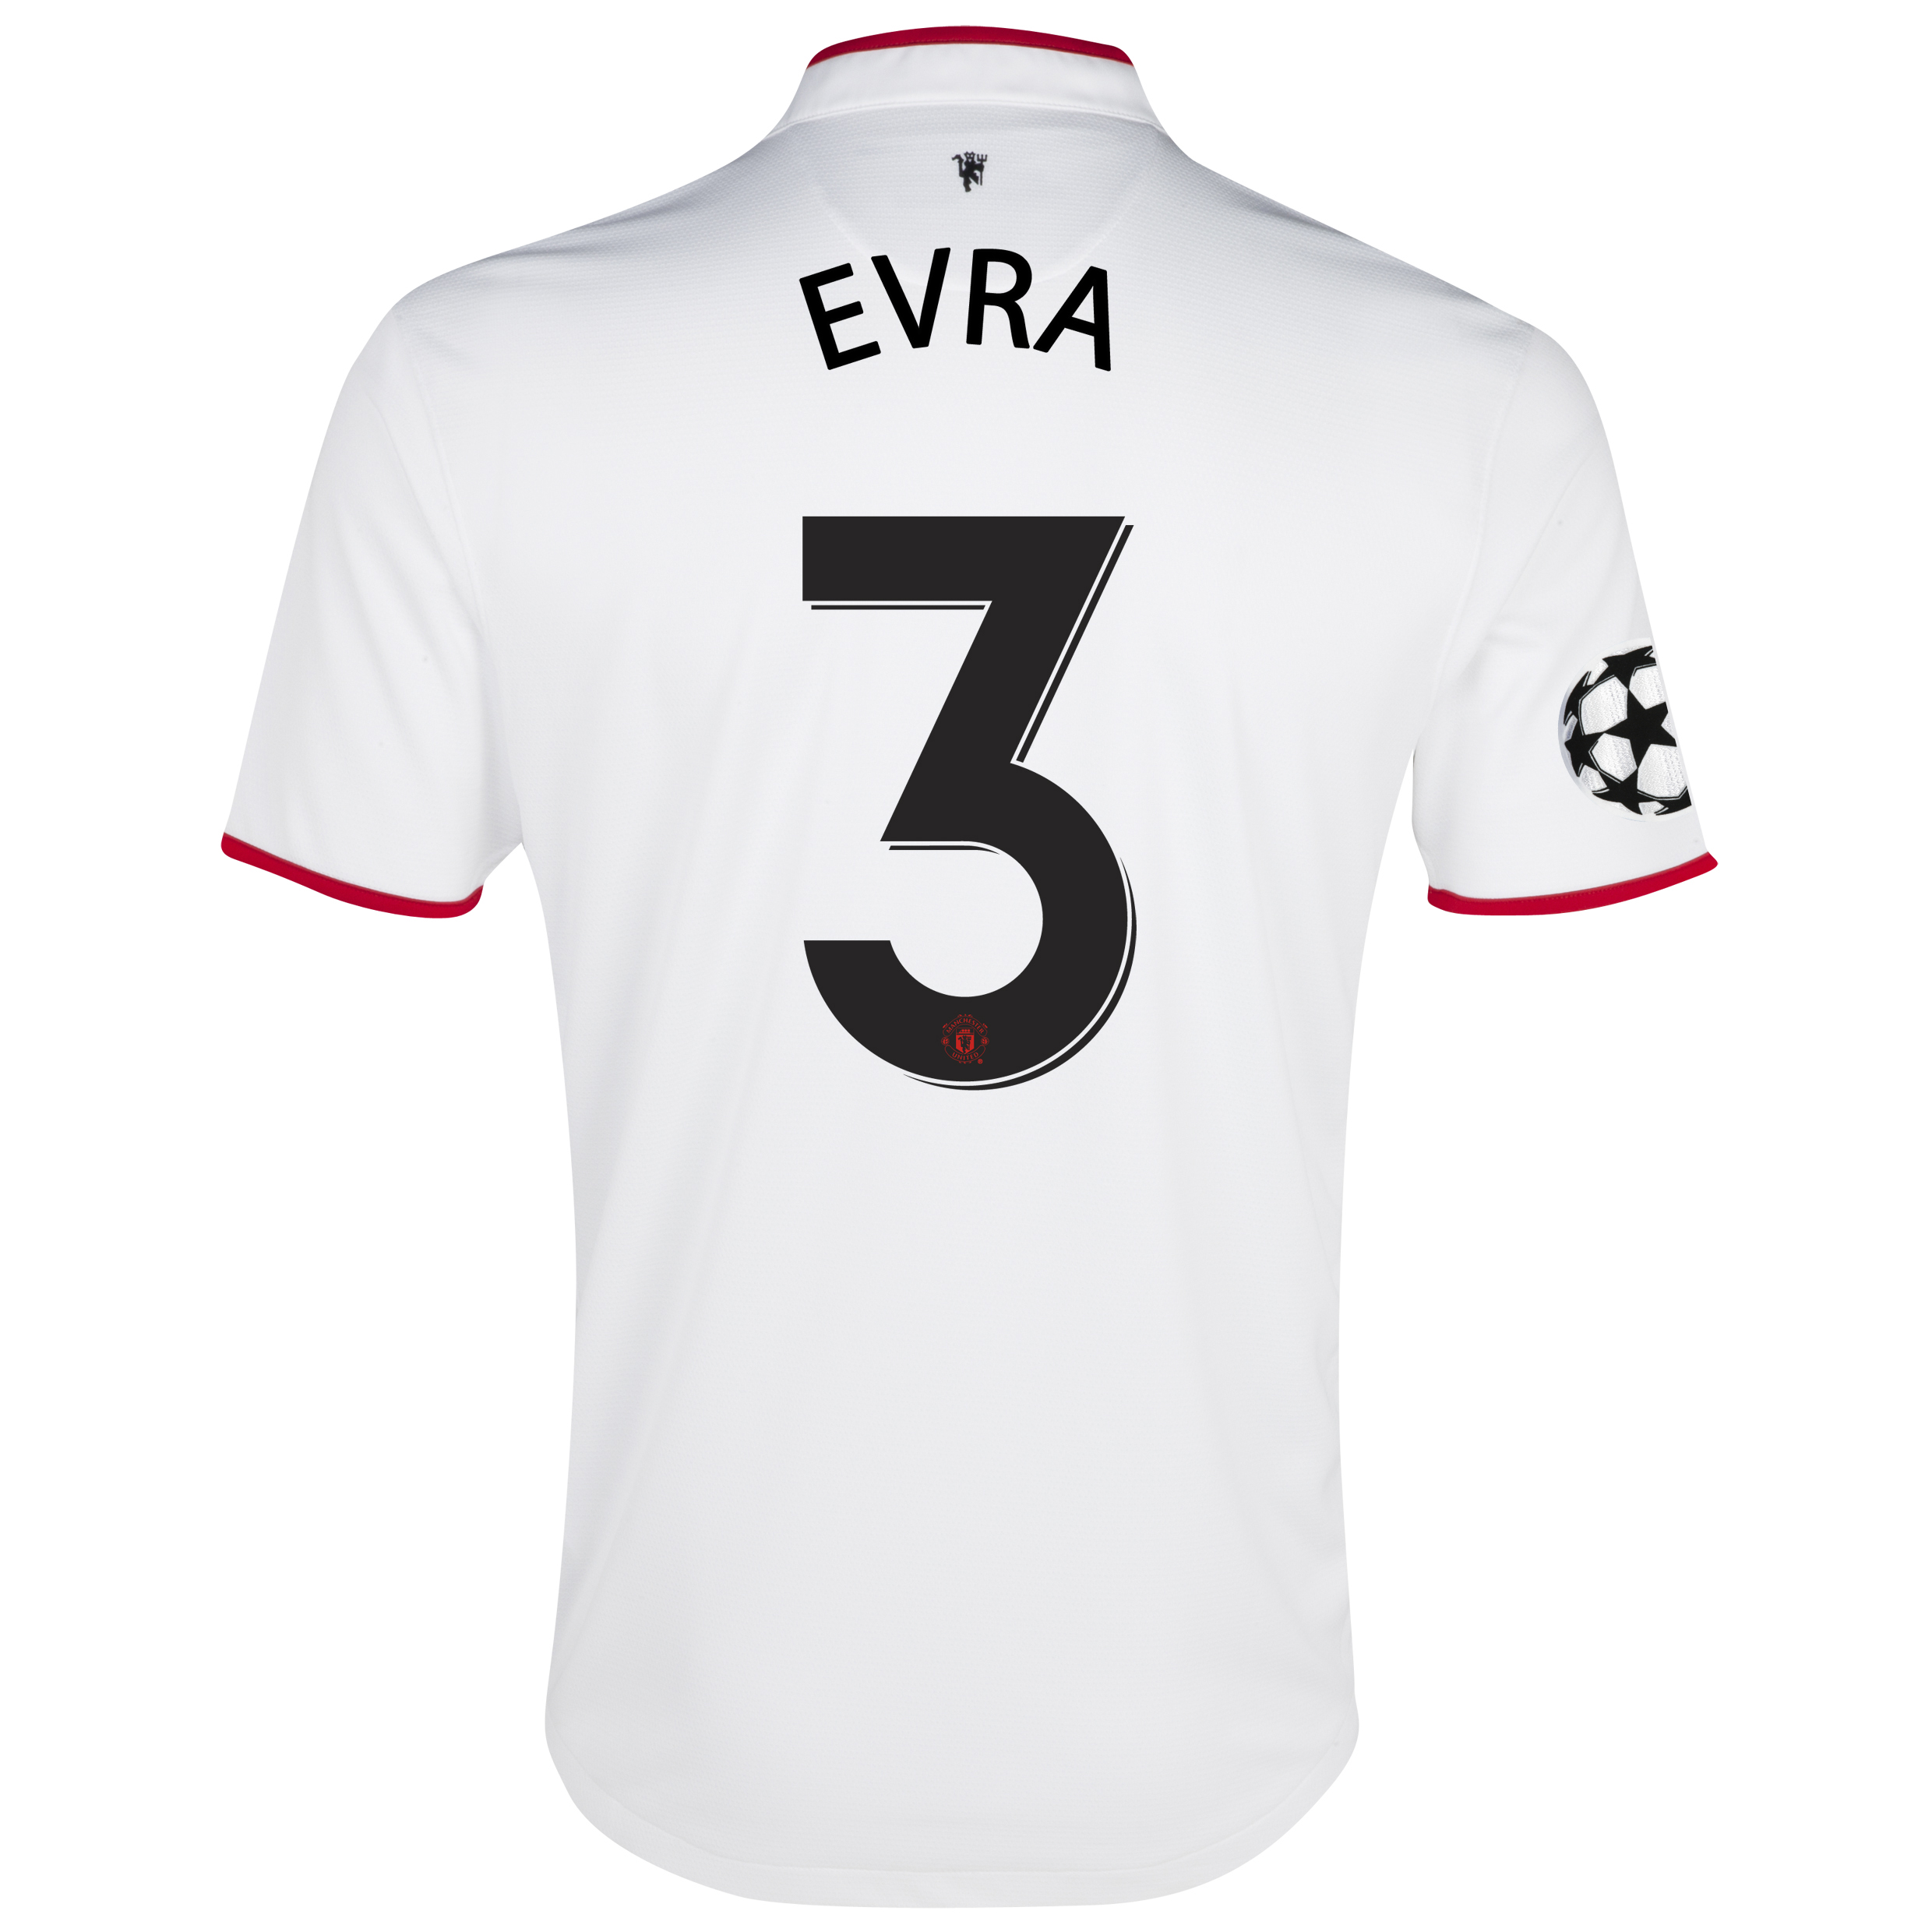 Manchester United UEFA Champions League Away Shirt 2012/13 with Evra 3 printing